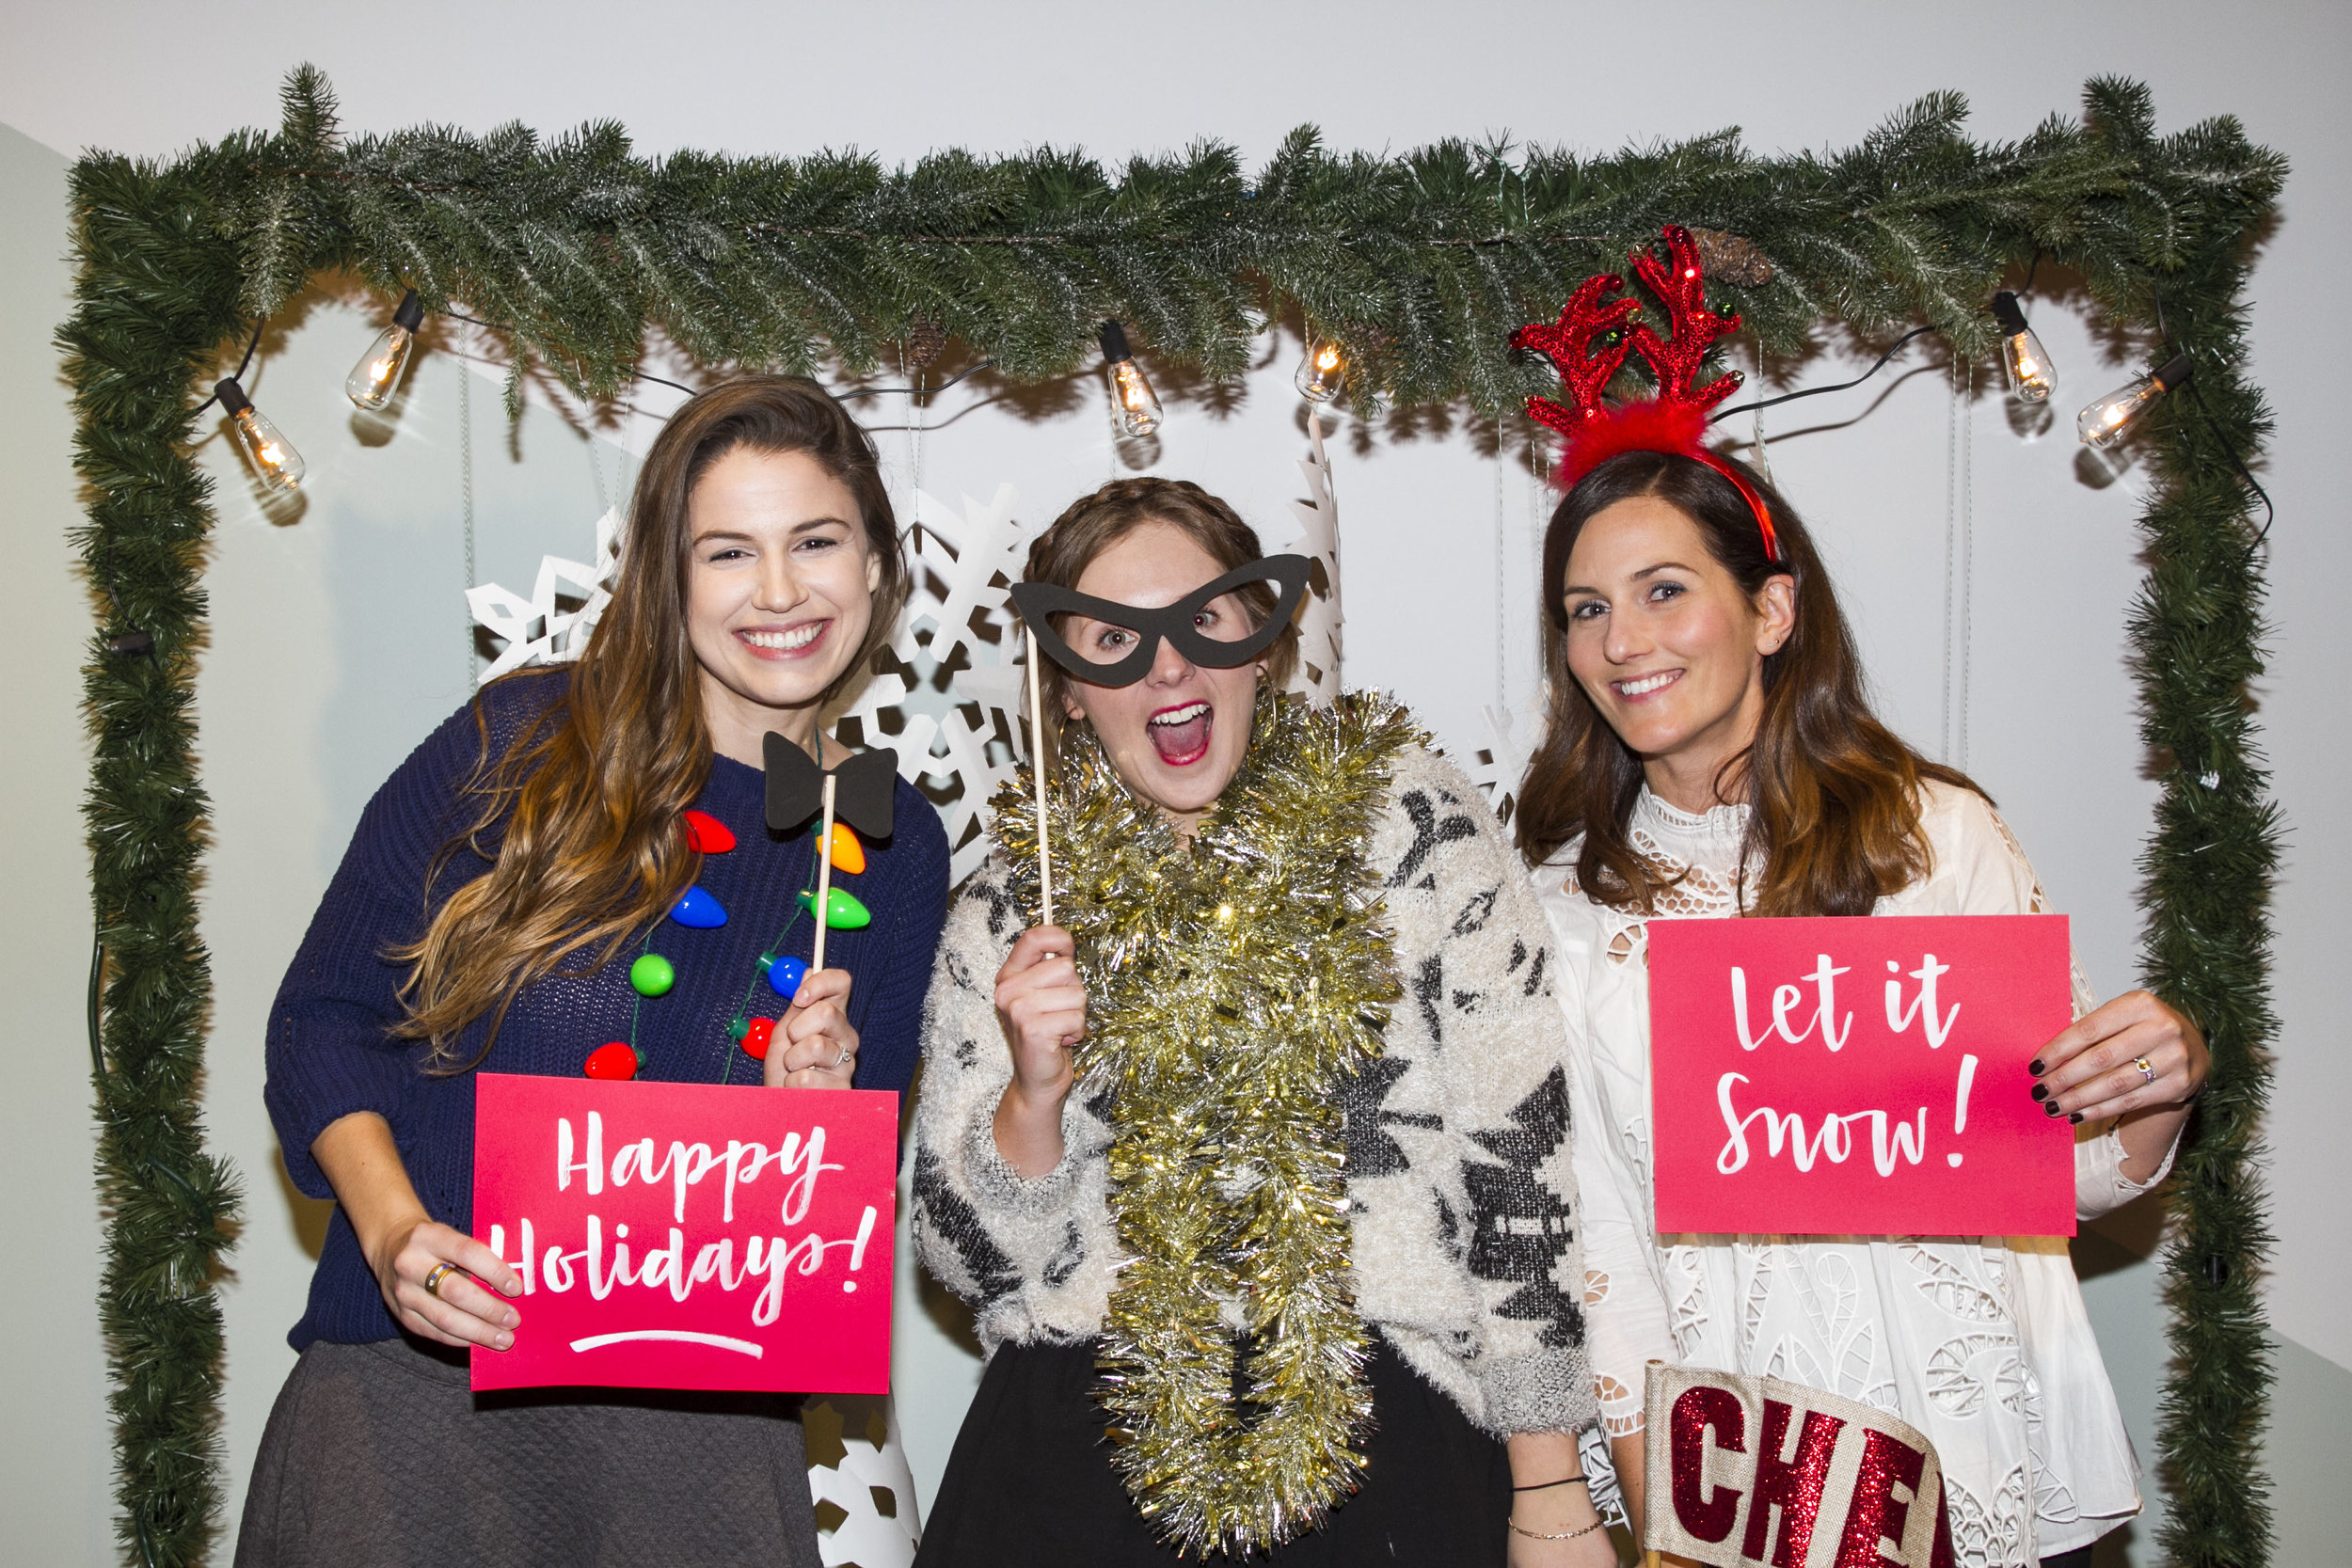 Saturate_HolidayParty